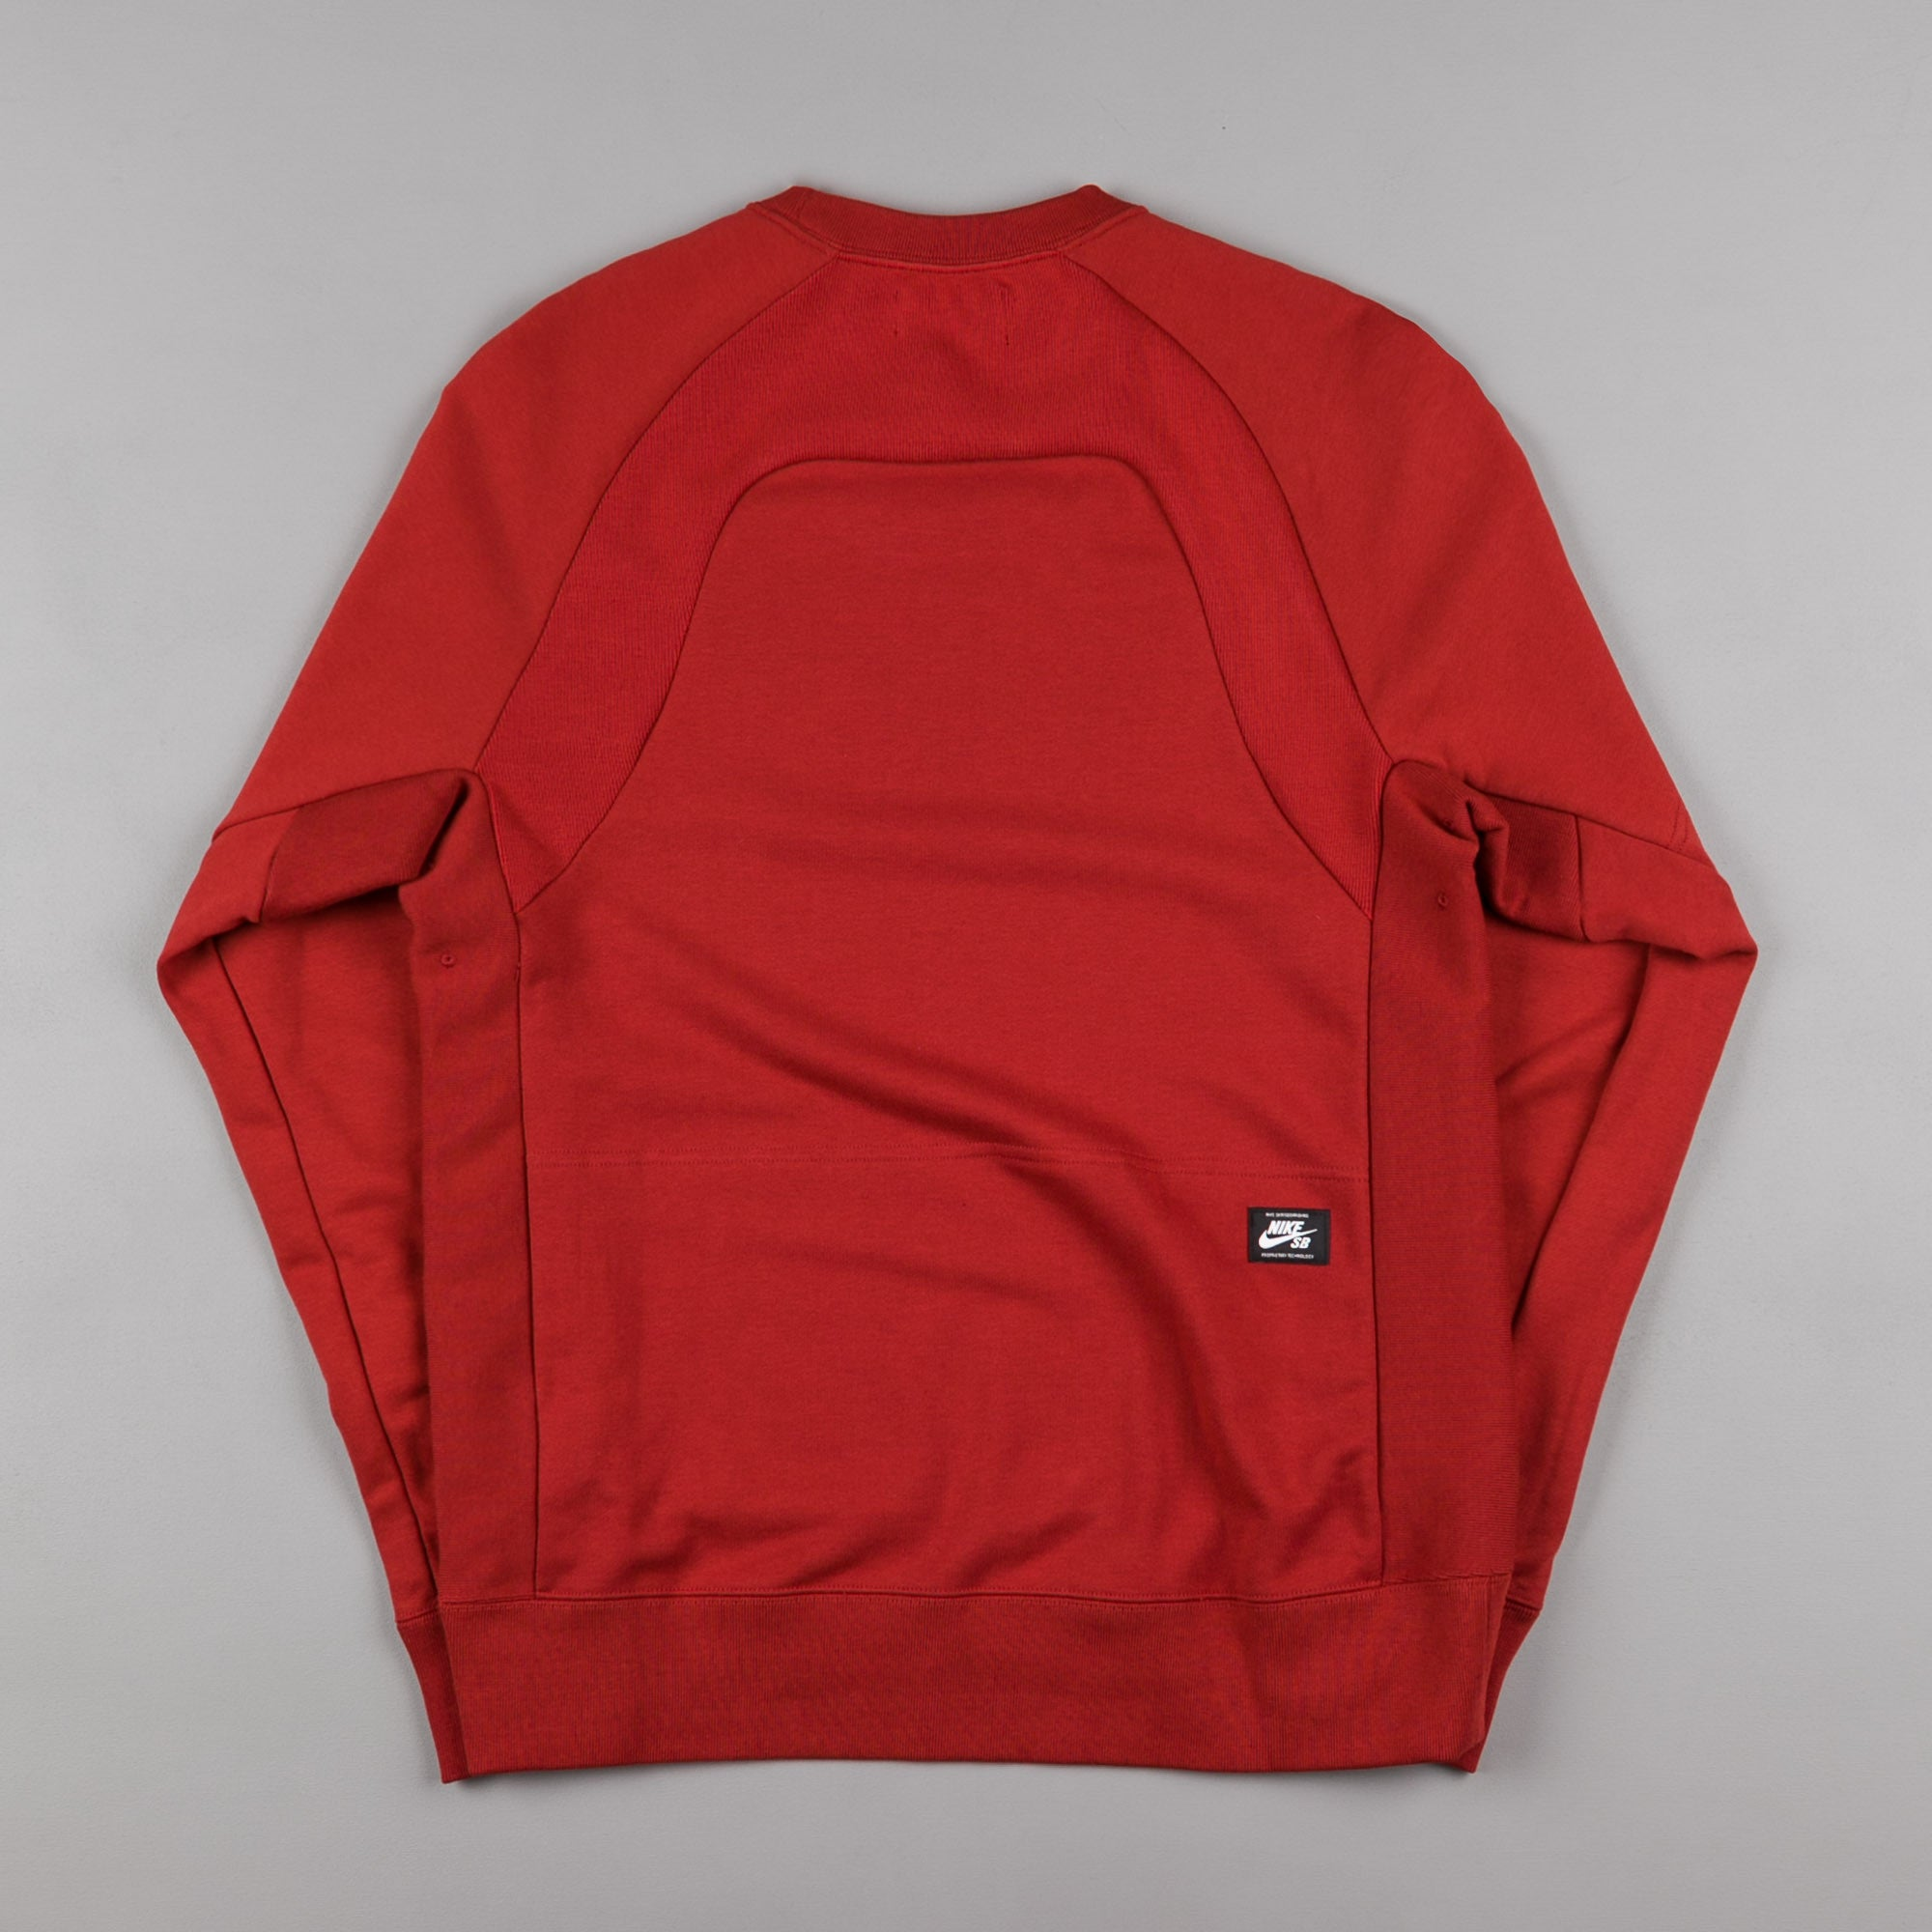 Nike SB Everett Reveal Crewneck Sweatshirt - Dark Cayenne / Light Crimson